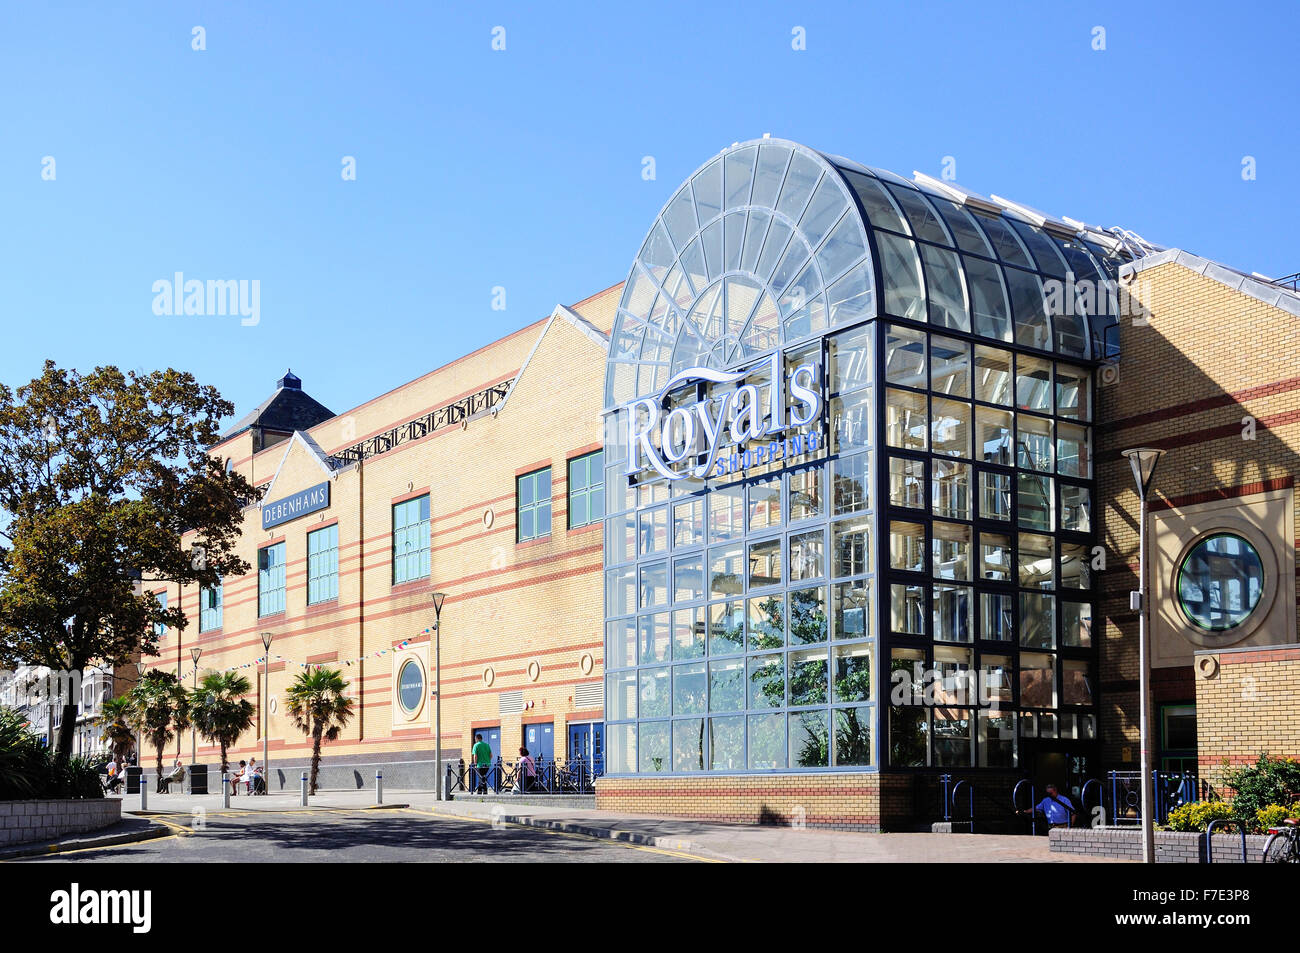 Royals Shopping Centre, Church Road, Southend-on-Sea, Essex, England, United Kingdom - Stock Image